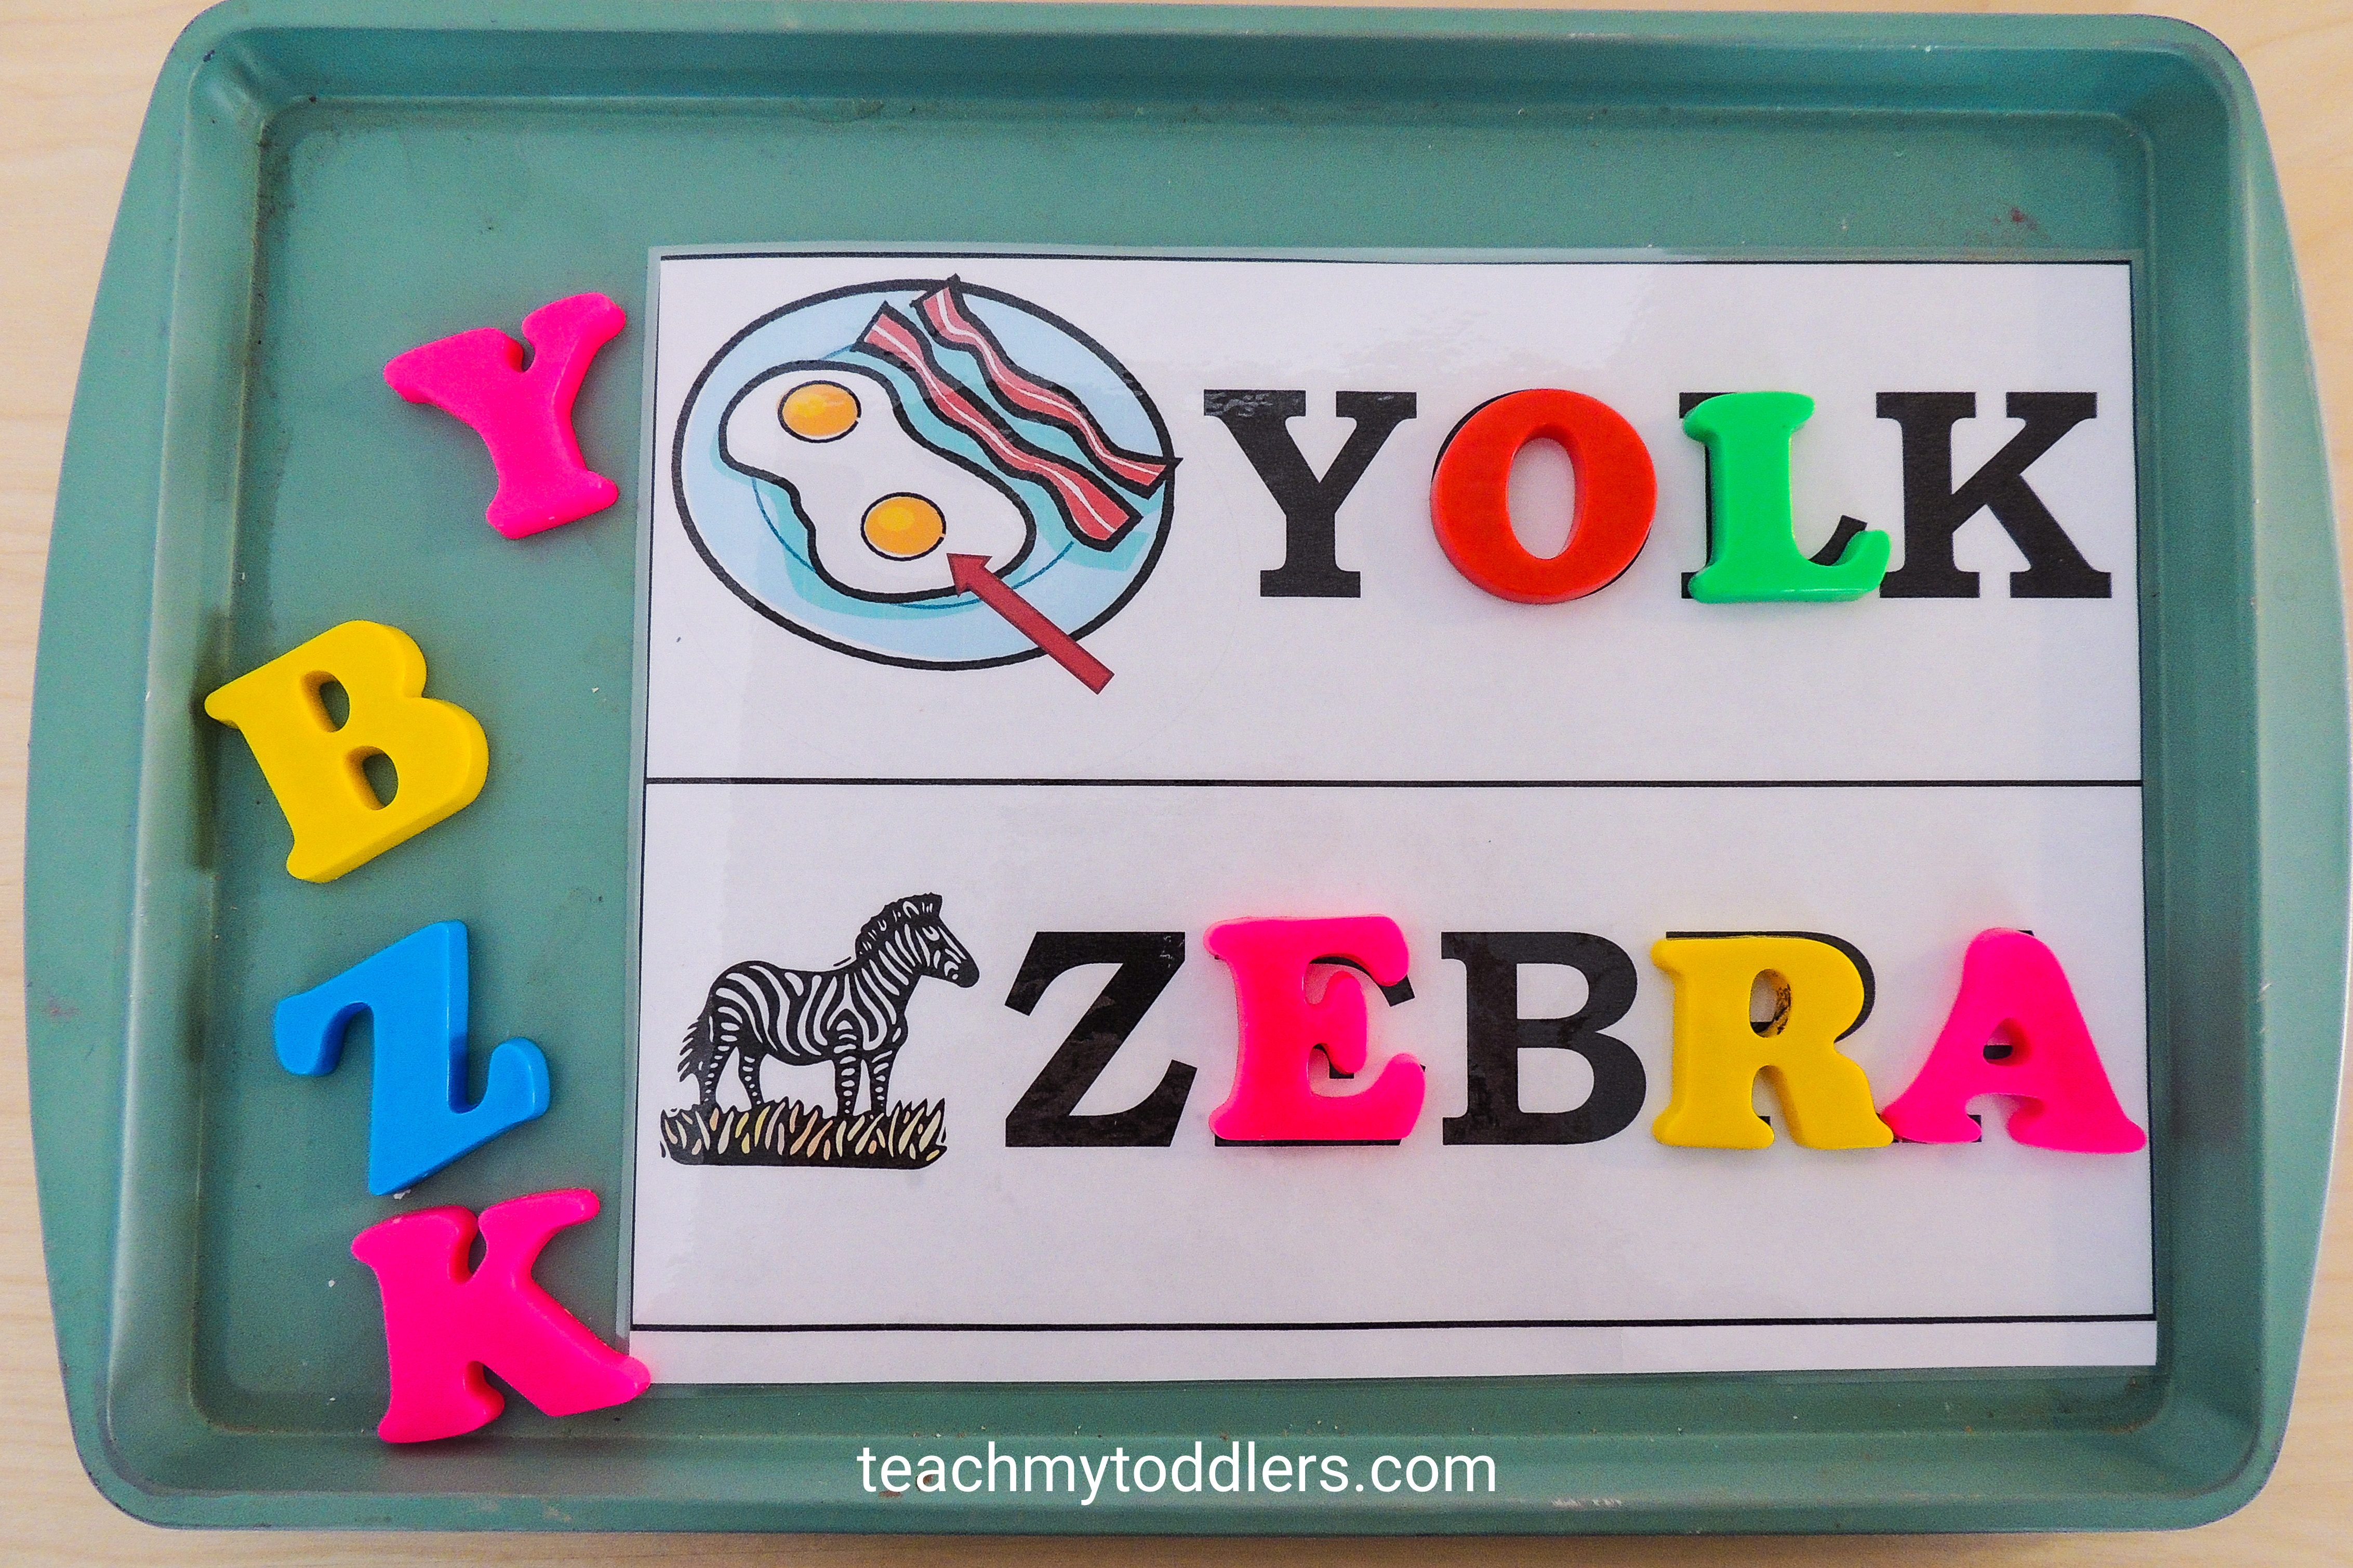 Discover how to use this magnetic match game to teach toddlers letters